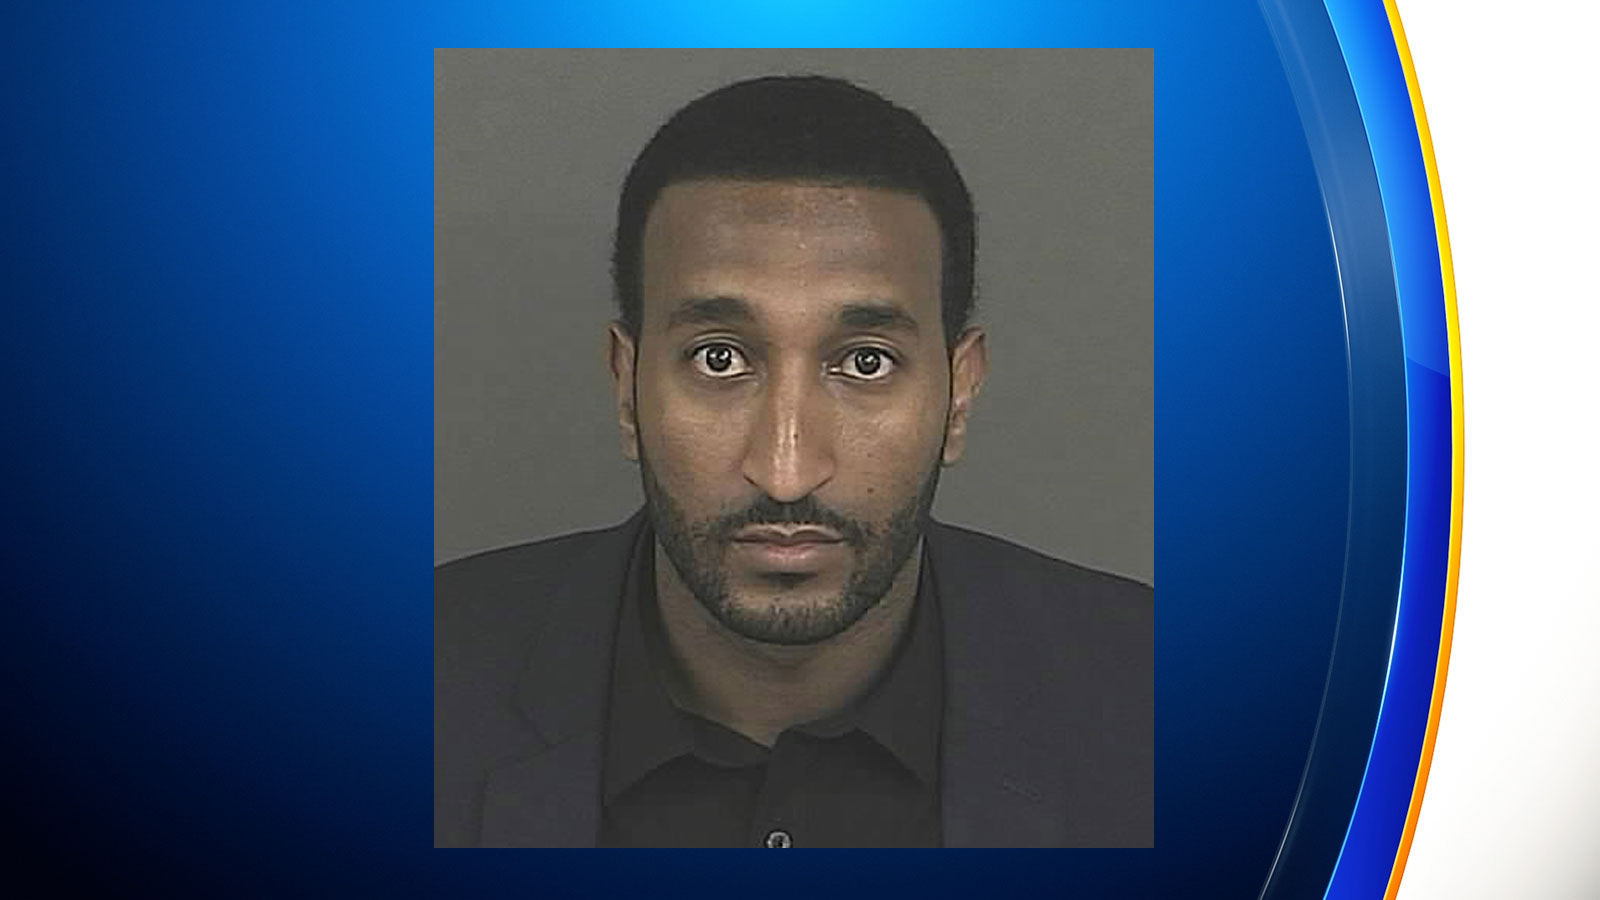 Maicle Abraha (credit: Denver District Attorney's Office)